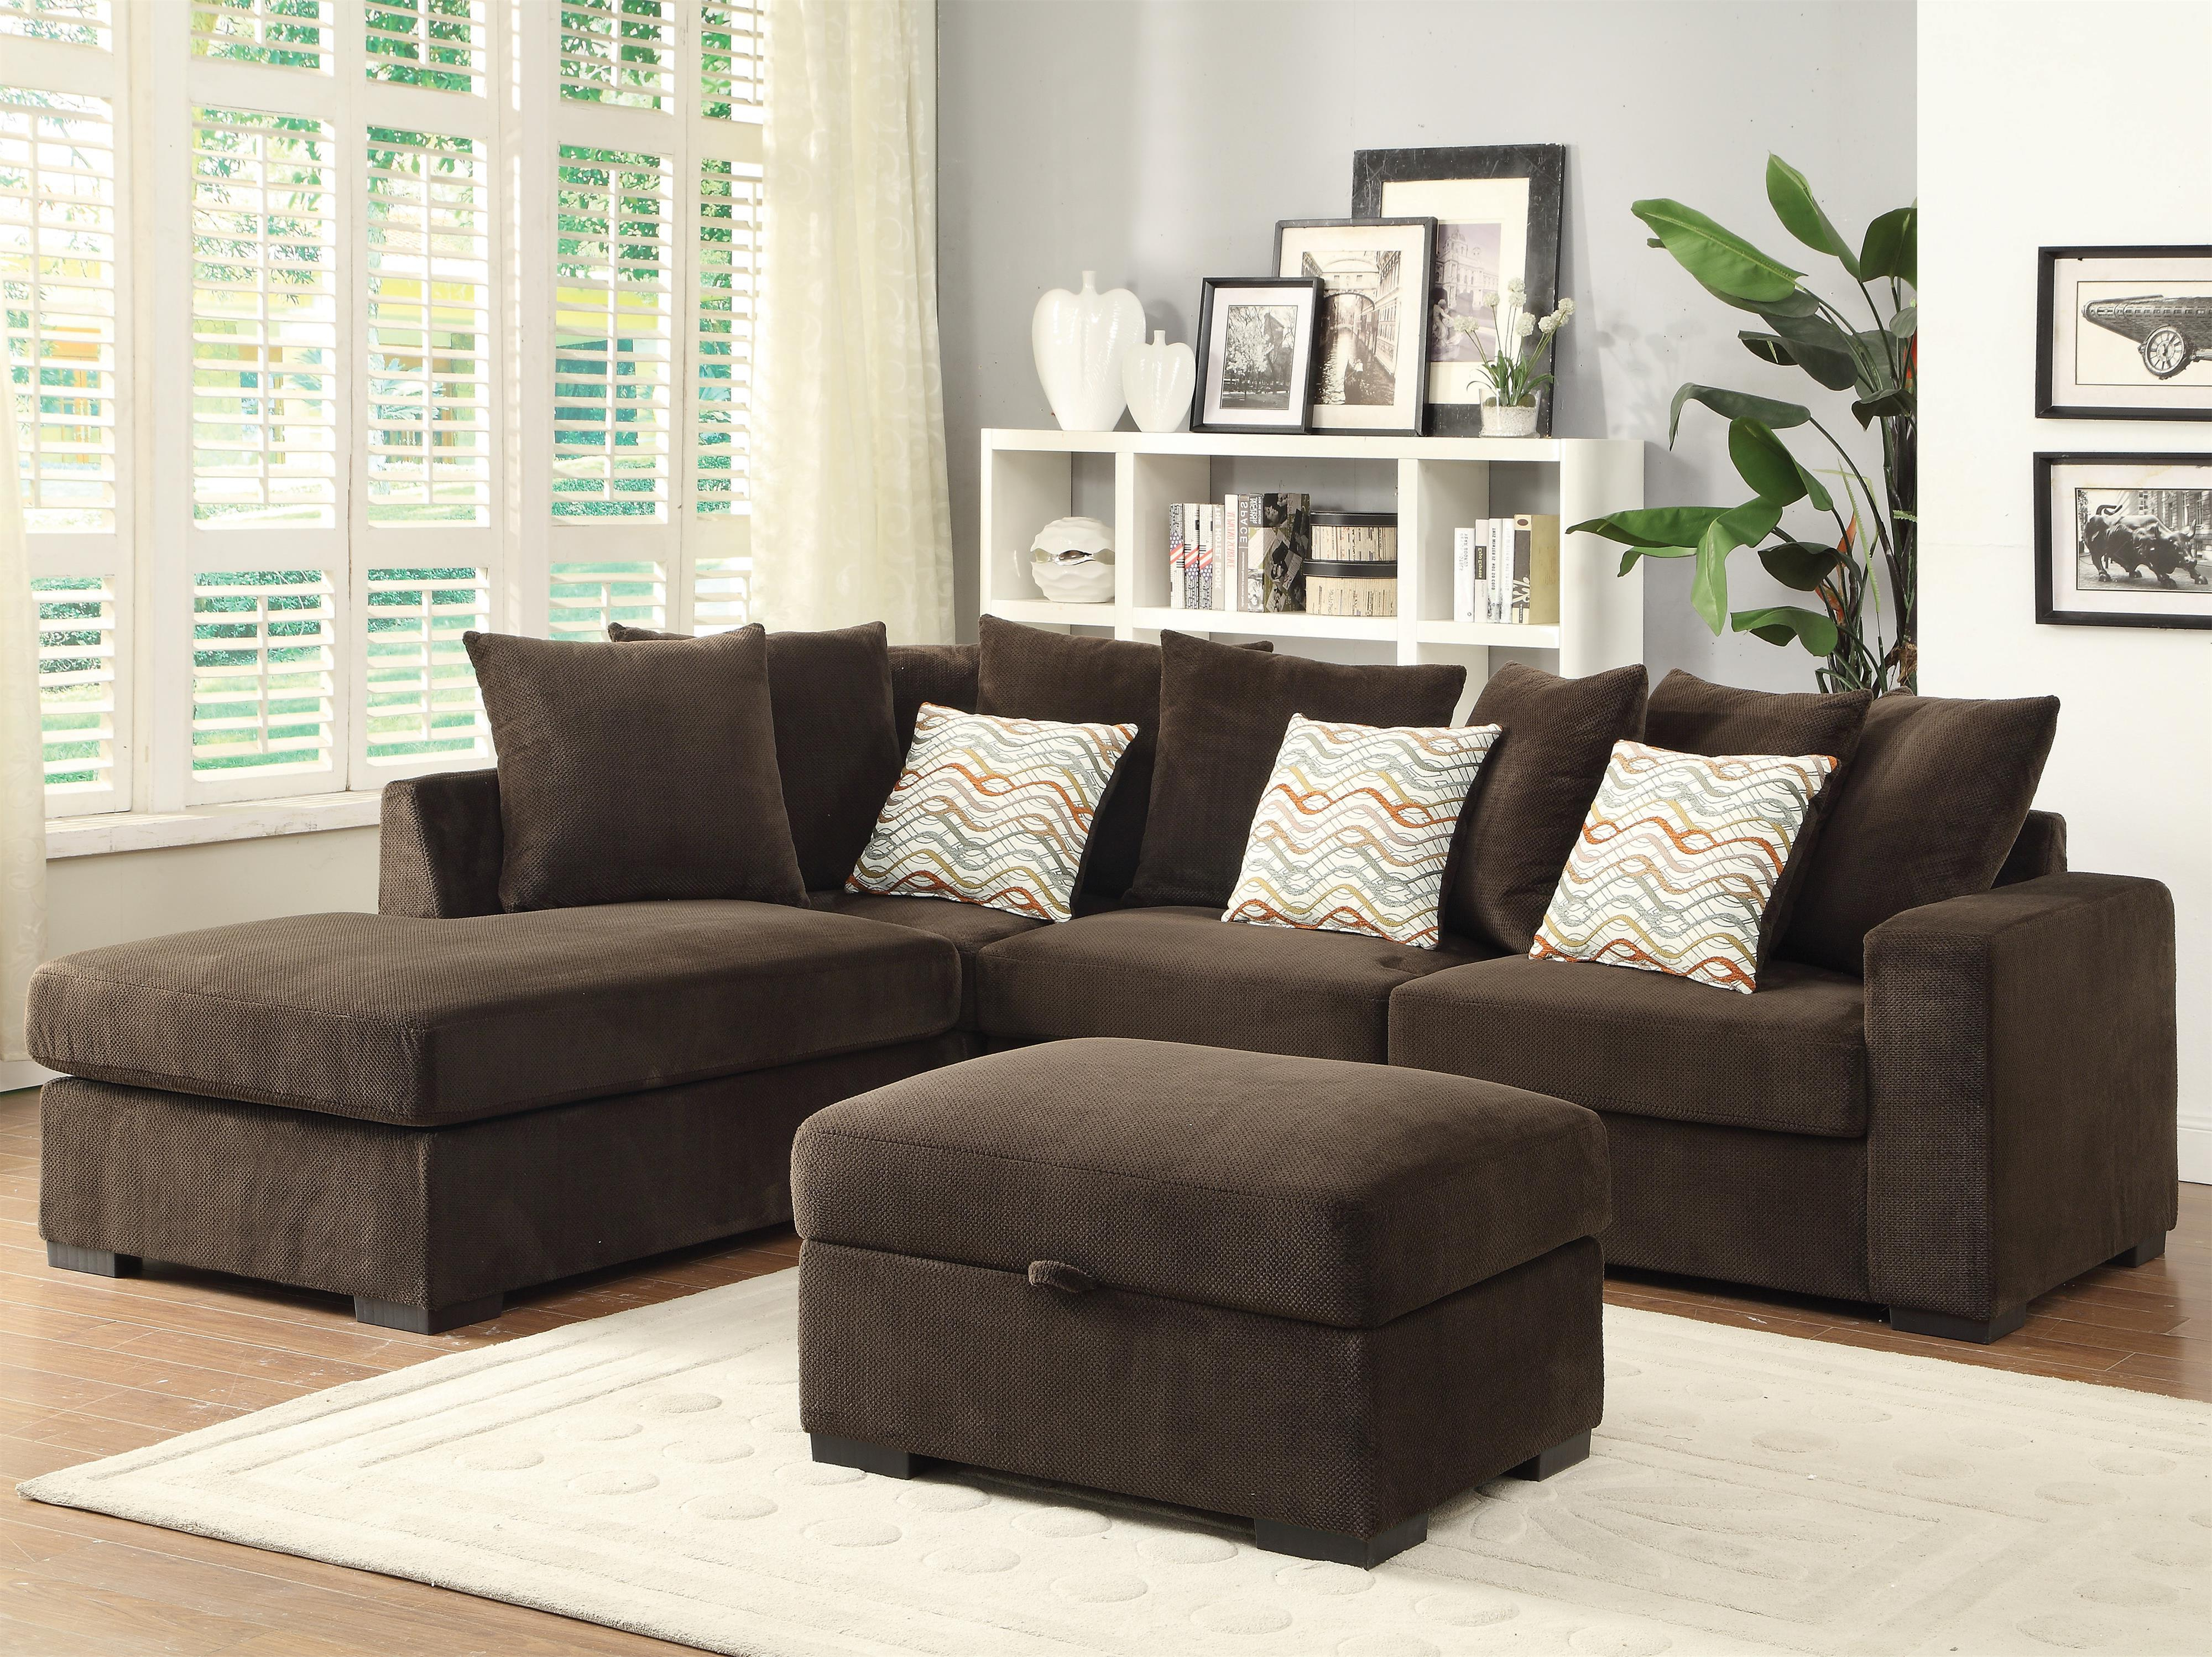 Best And Newest Coaster Olson Contemporary Reversible Sectional With Chaise (Gallery 10 of 20)